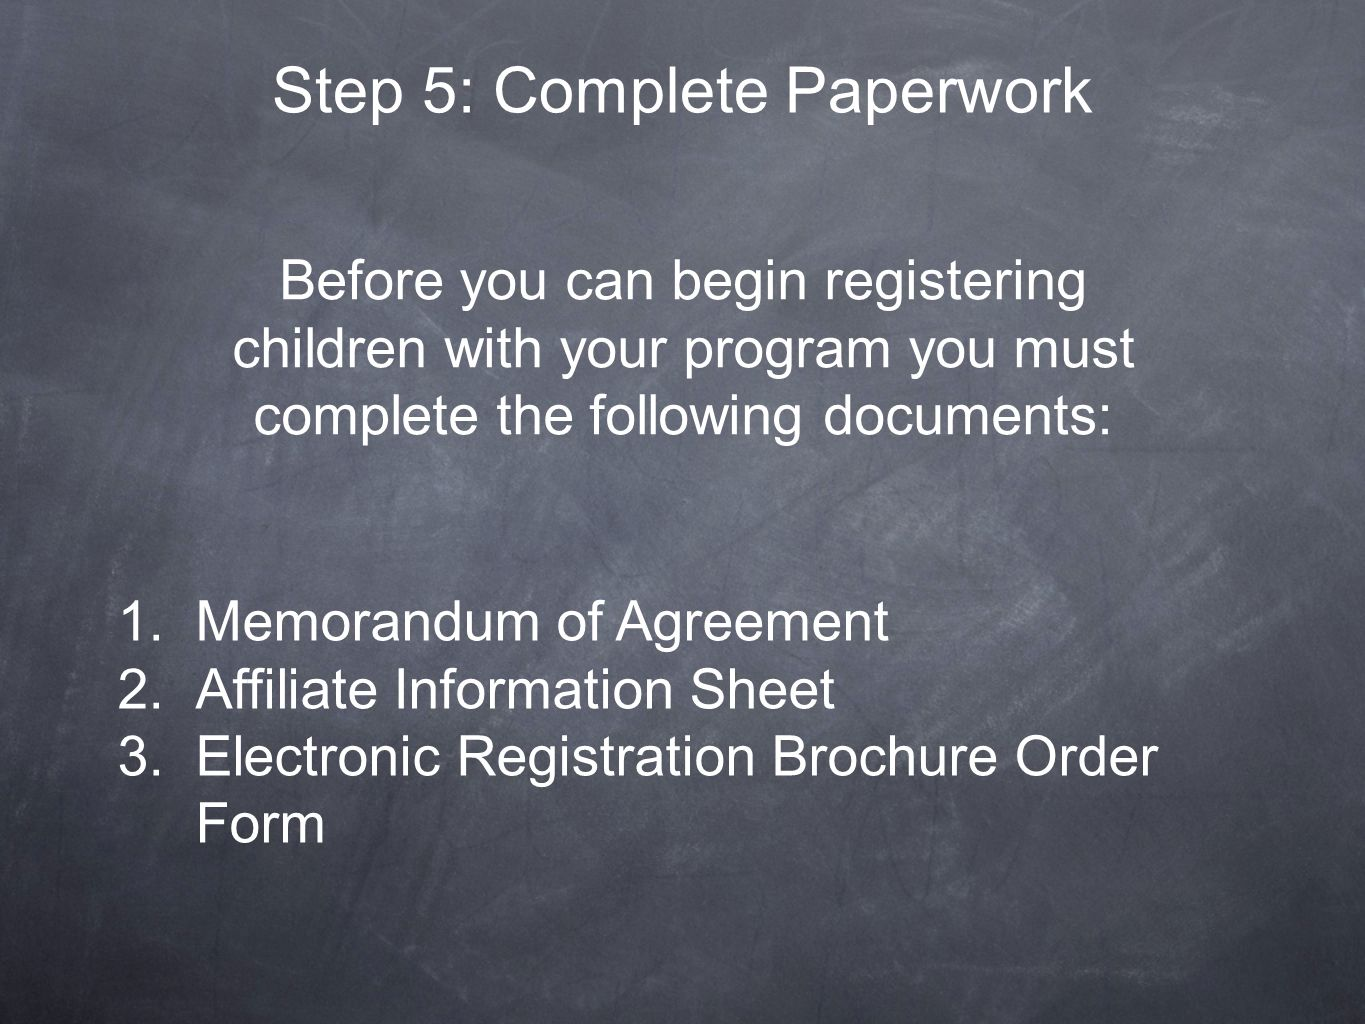 Step 5: Complete Paperwork Before you can begin registering children with your program you must complete the following documents: 1.Memorandum of Agreement 2.Affiliate Information Sheet 3.Electronic Registration Brochure Order Form